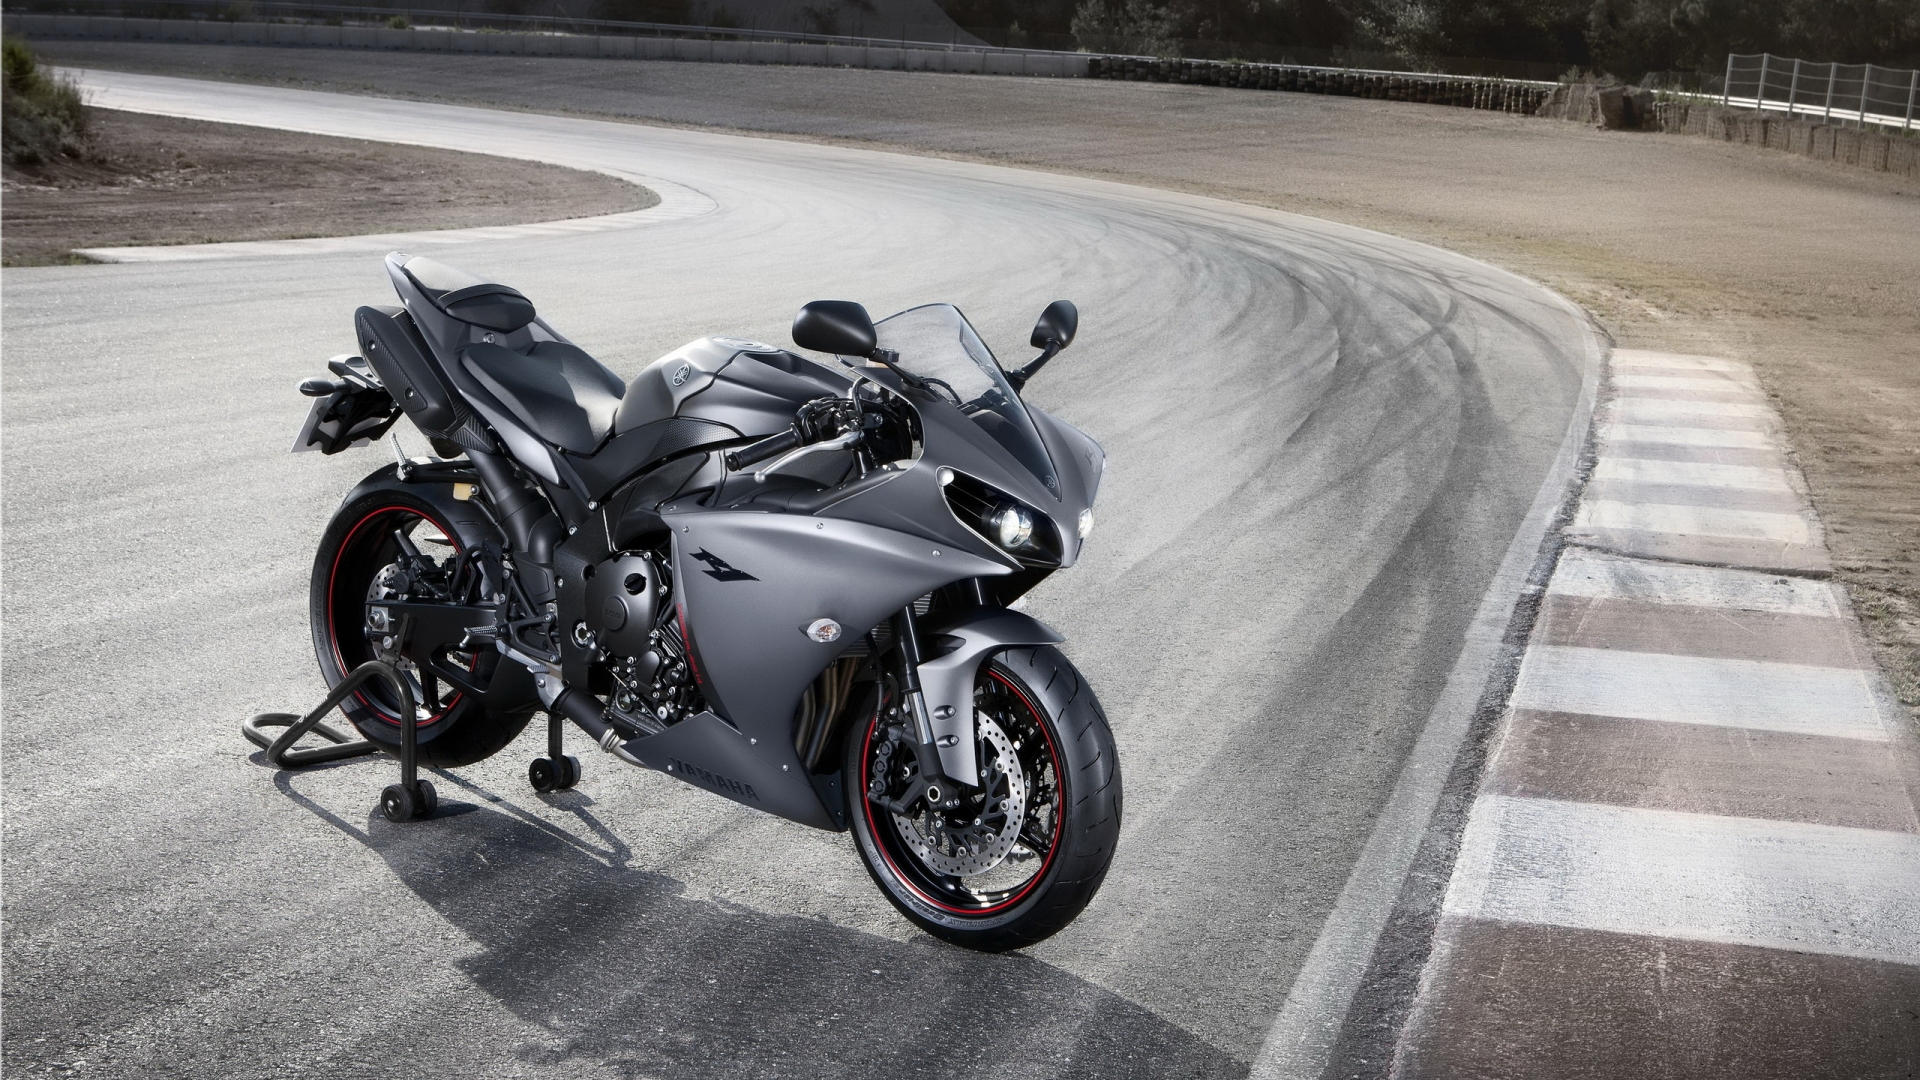 ... R1 Specs | Yamaha R1 price | Yamaha R1 for sale | Yamaha R1 wallpaper